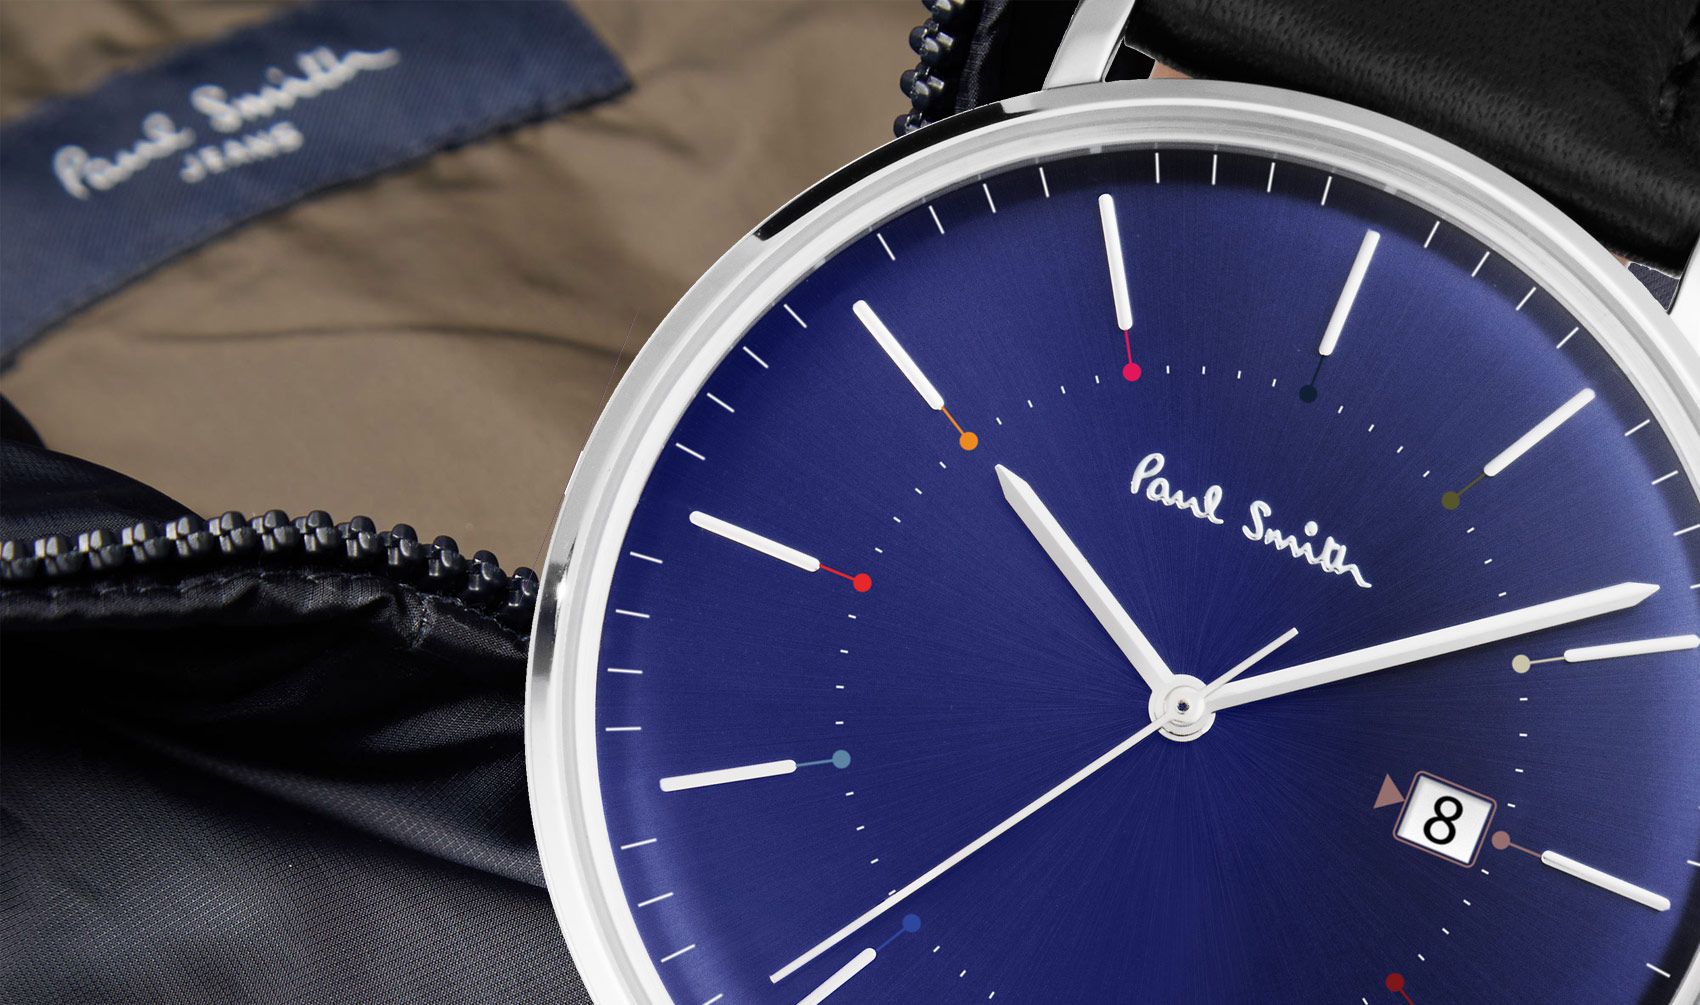 Take Some Time To Look At The Paul Smith Track Collection